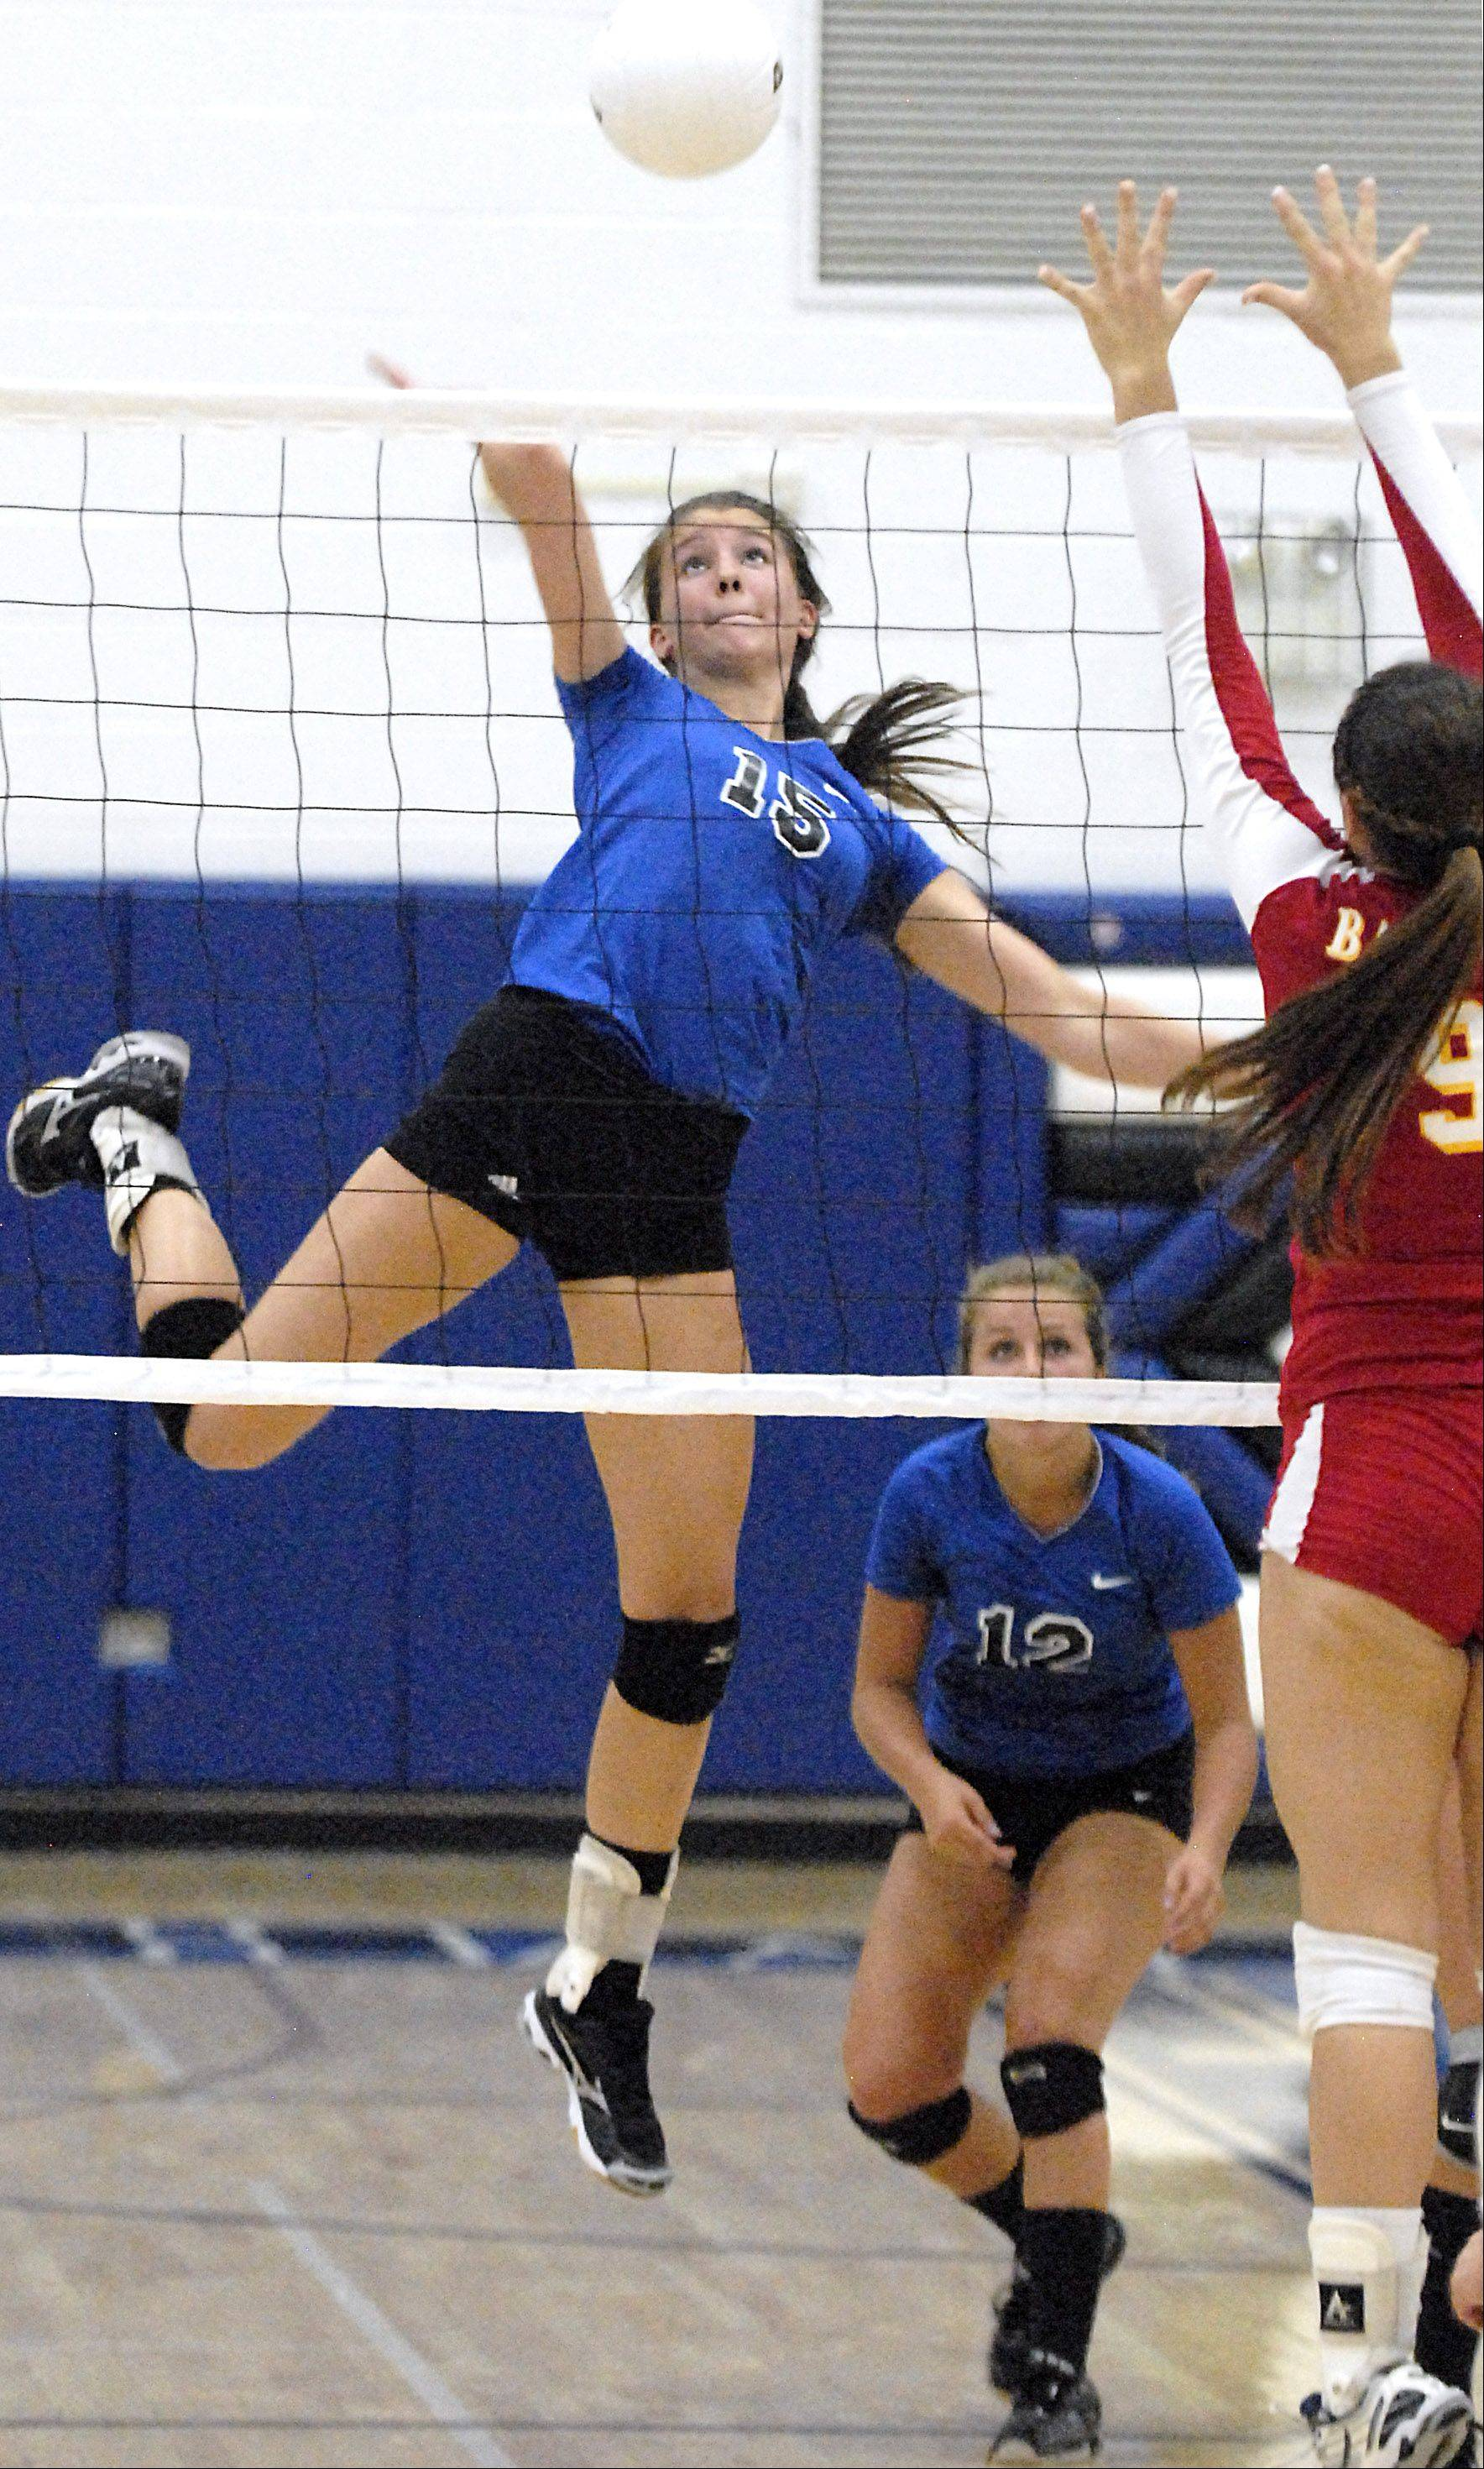 St. Charles North's Alex Stone spikes the ball over Batavia's Heather Meyer in game two on Tuesday, September 4.